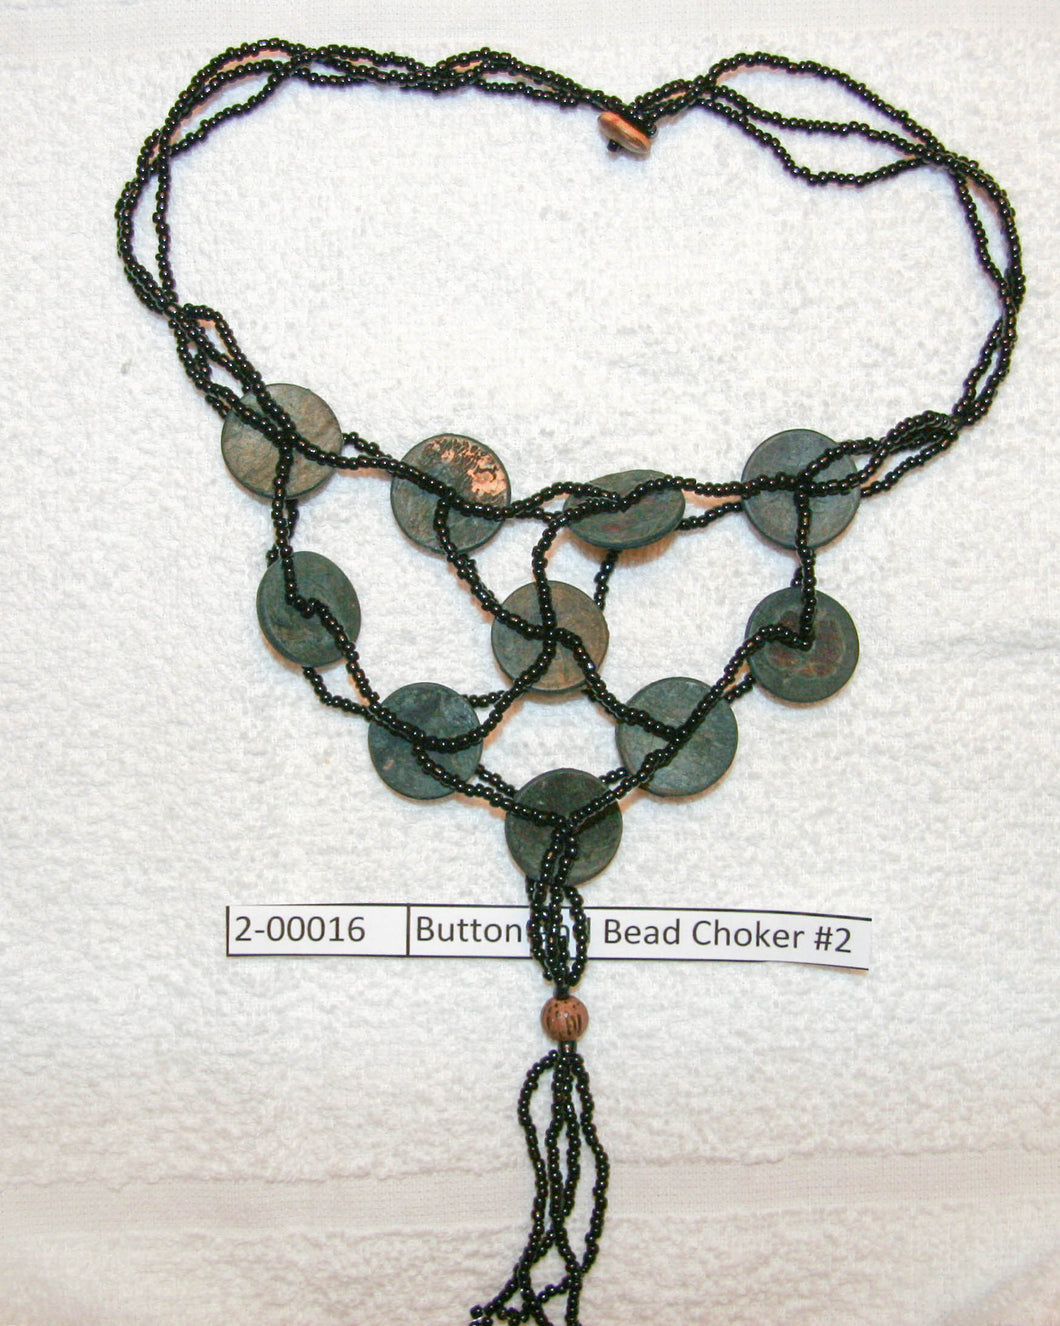 Button and Bead Choker #2